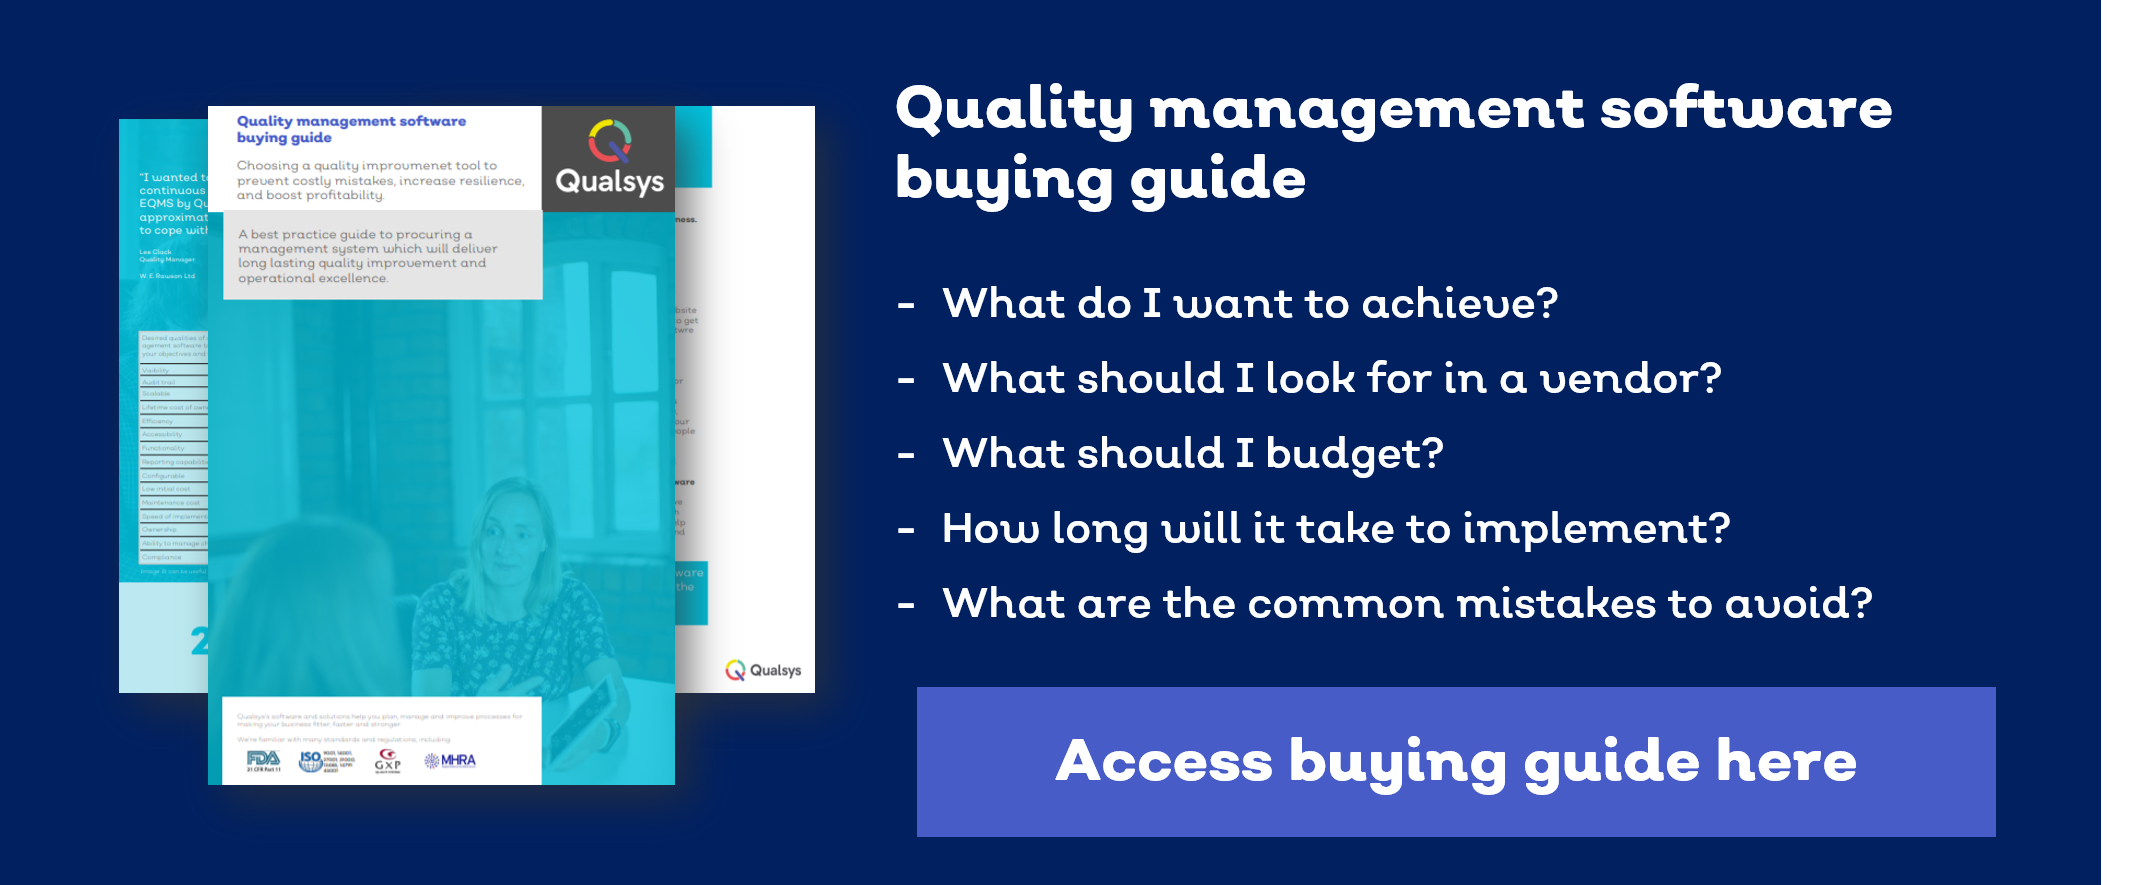 software buying guide